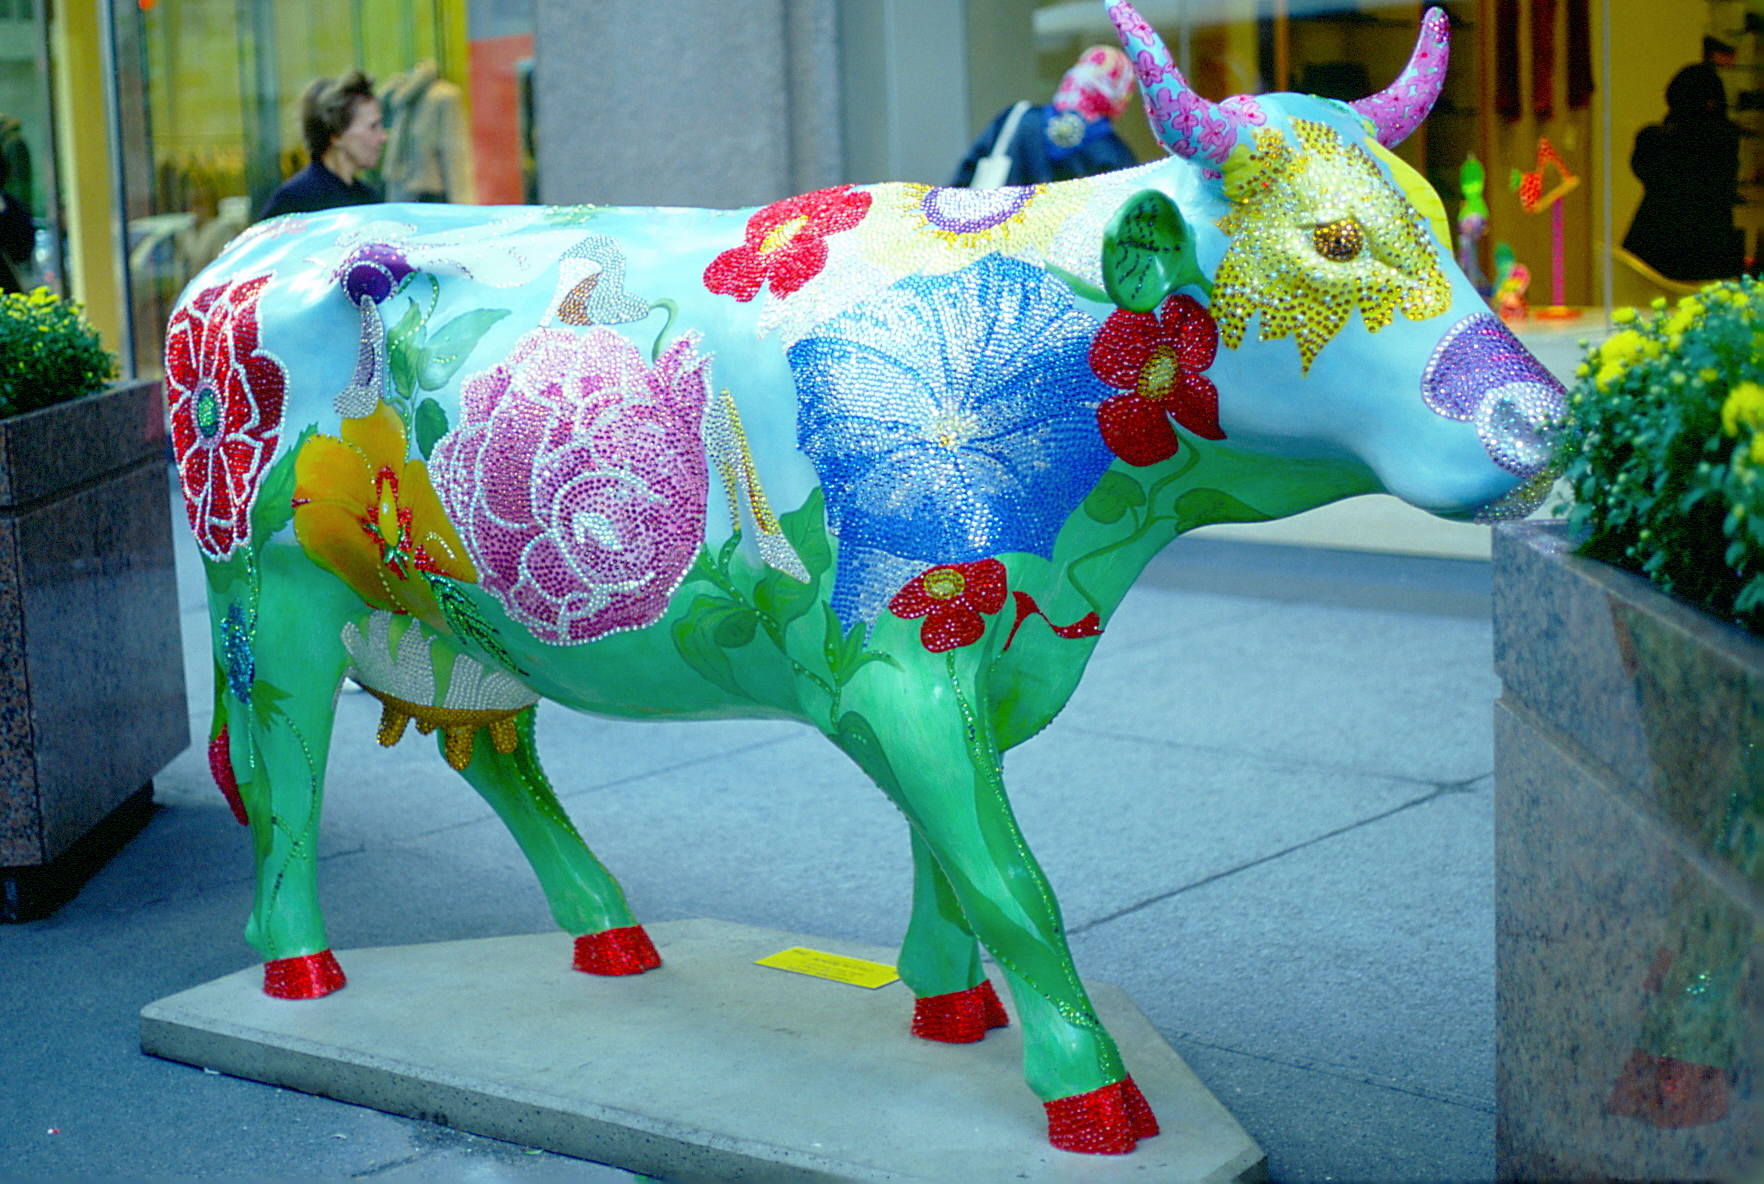 Rhinestone Cowgirl Cows on Parade Chicago Illinois Stuart Weitzman Shoe Company Linda Dolack Large Sculpture Private Collection of Jane and Stuart Weitzman